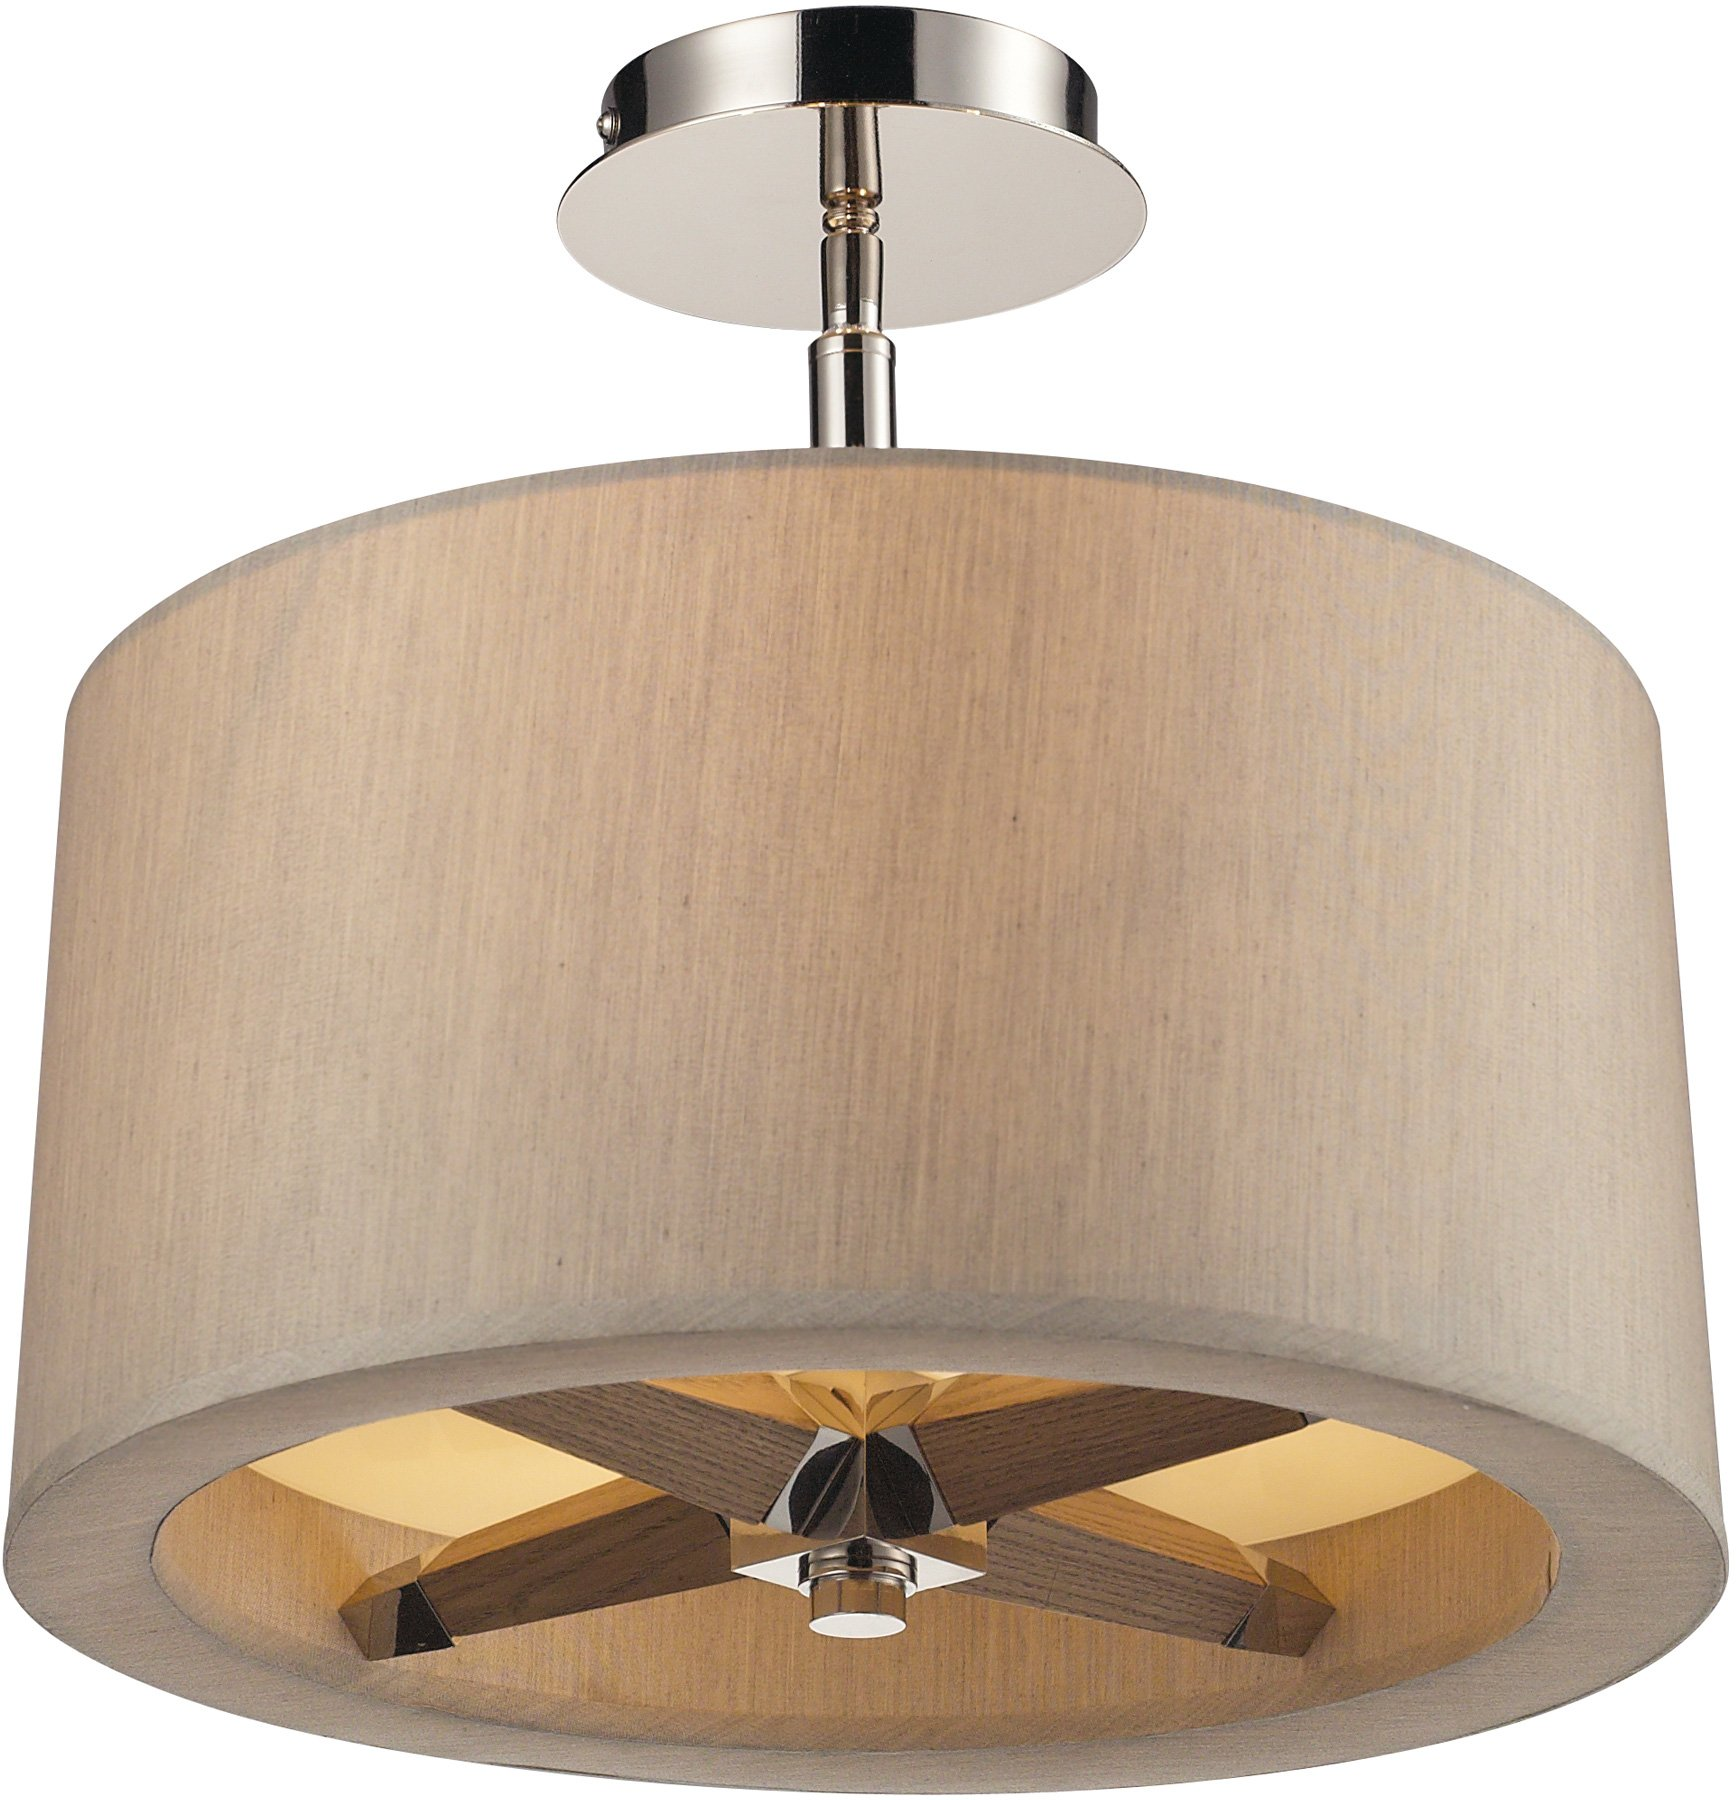 Elk Lighting Fans: Elk Lighting 31334/3 Jorgenson Transitional Semi Flush